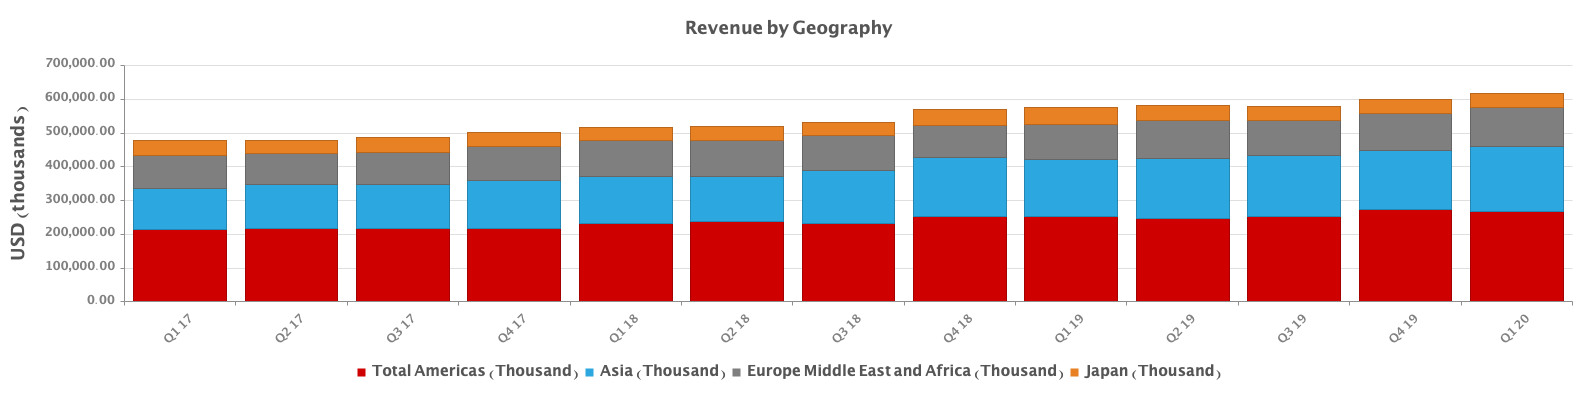 revenue-geography-cadence